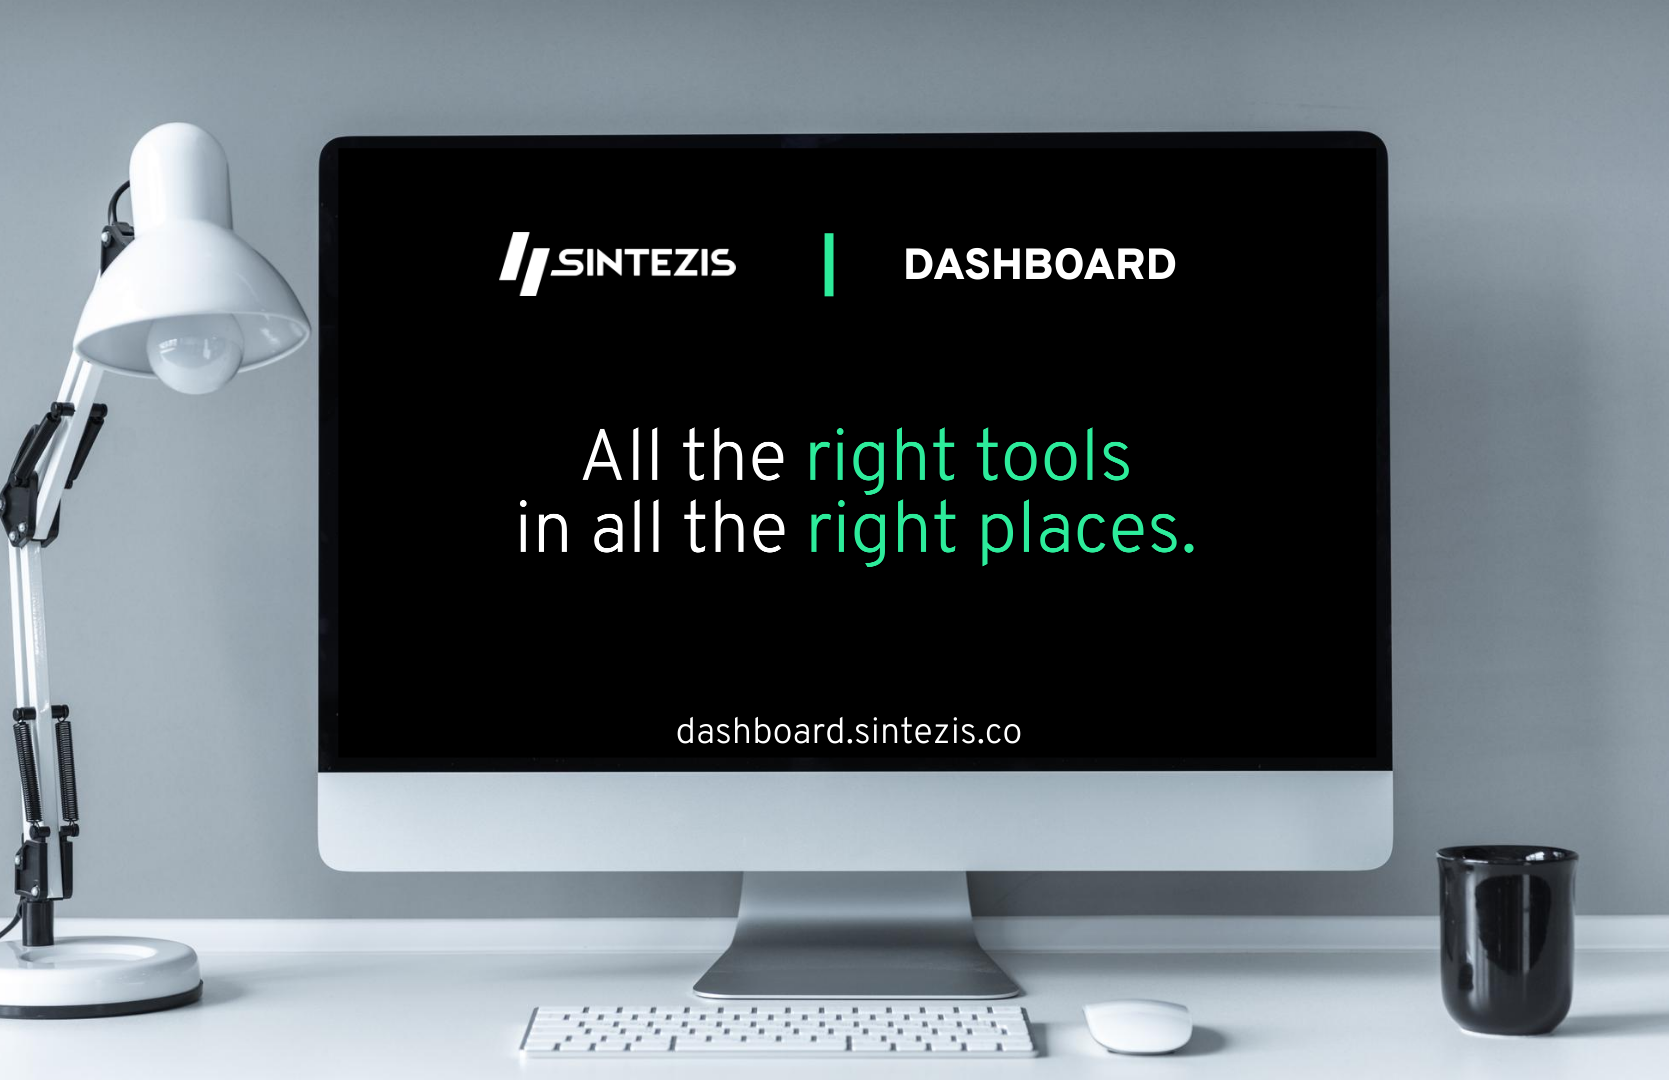 Sintezis Dashboard landing visual